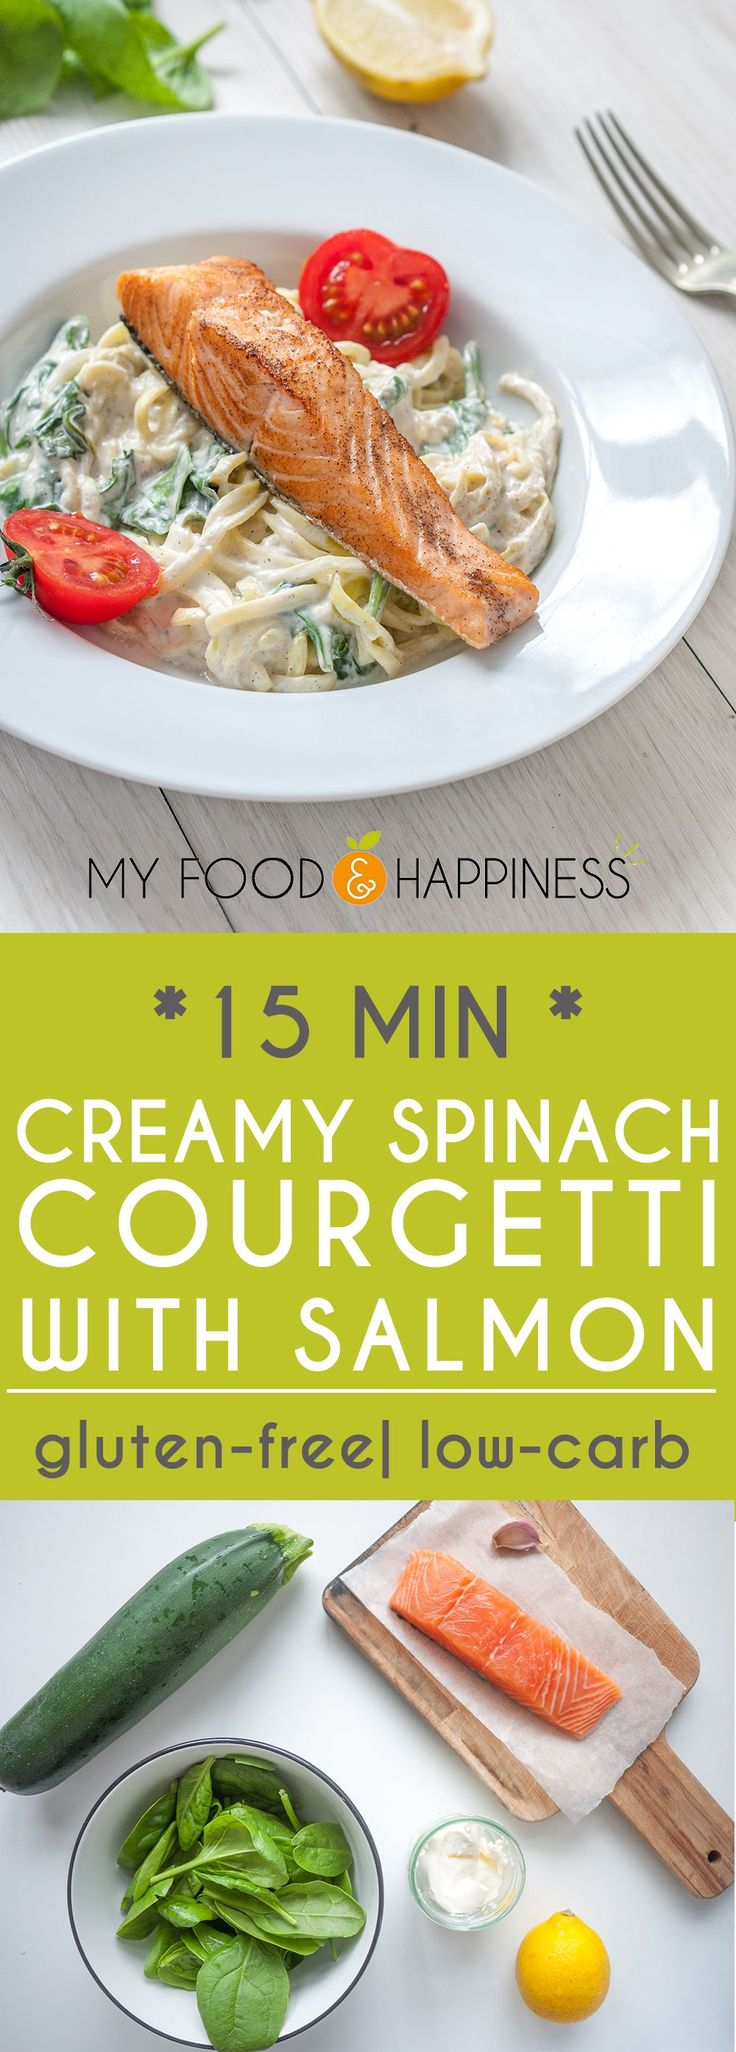 Healthy and delicious creamy spinach zoodles / courgetti with Salmon. High-protein, low-carb and gluten-free meal ready in just 15 minutes!